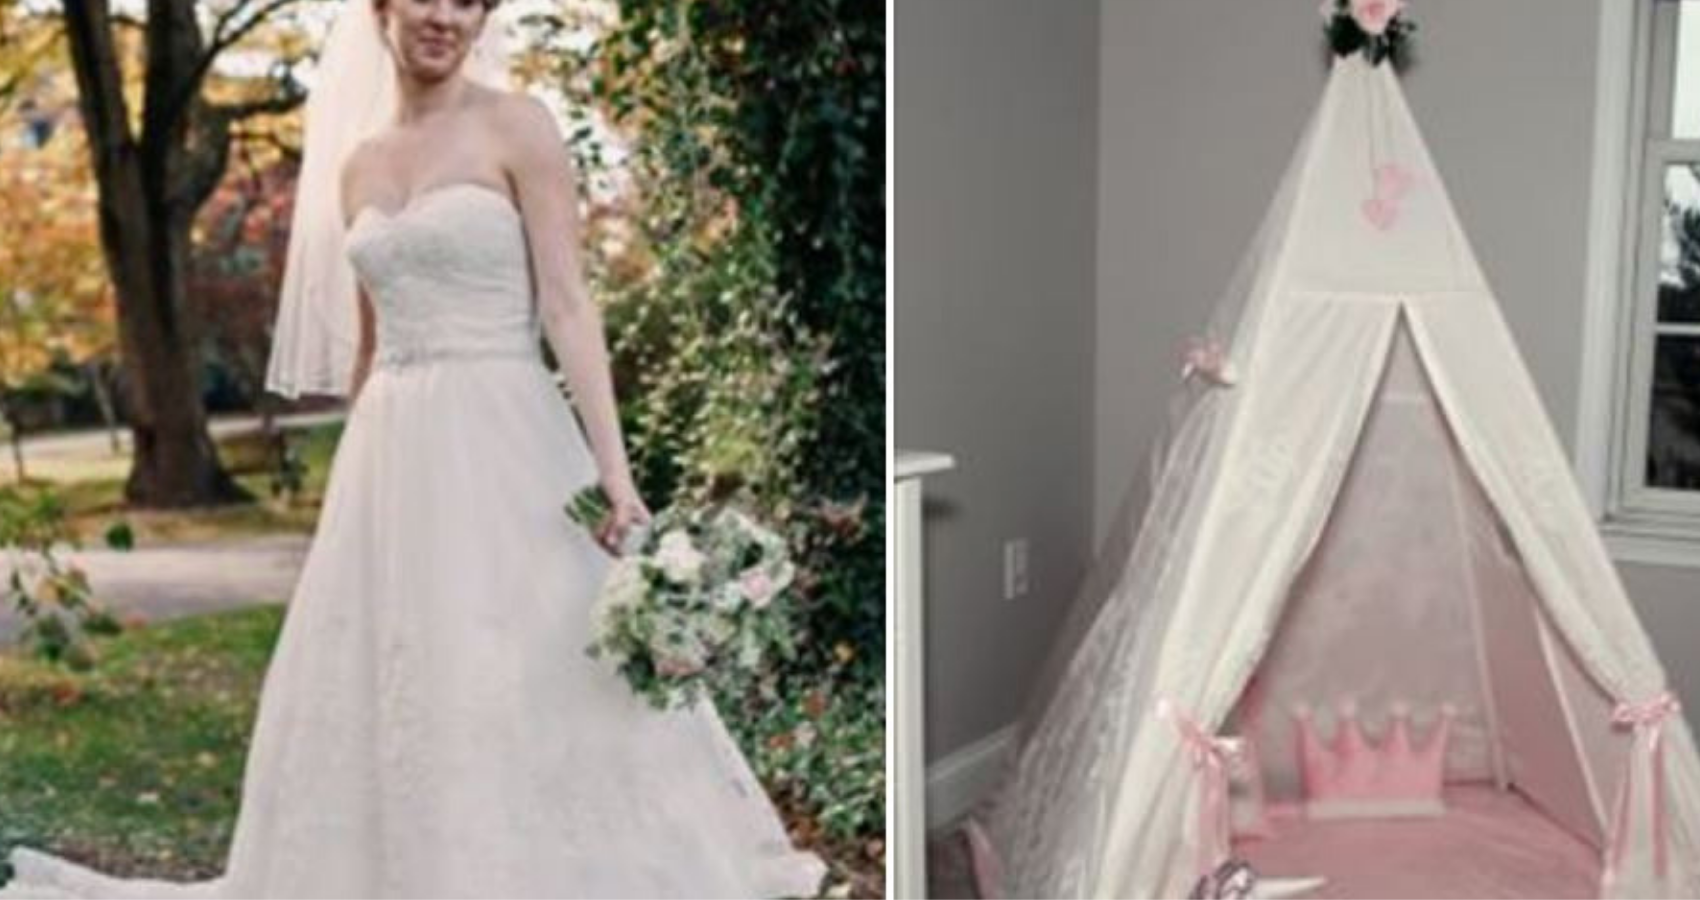 Wedding Dress Into A Play Tent How To Instructions Moms Com,Plus Size Wedding Dresses Tampa